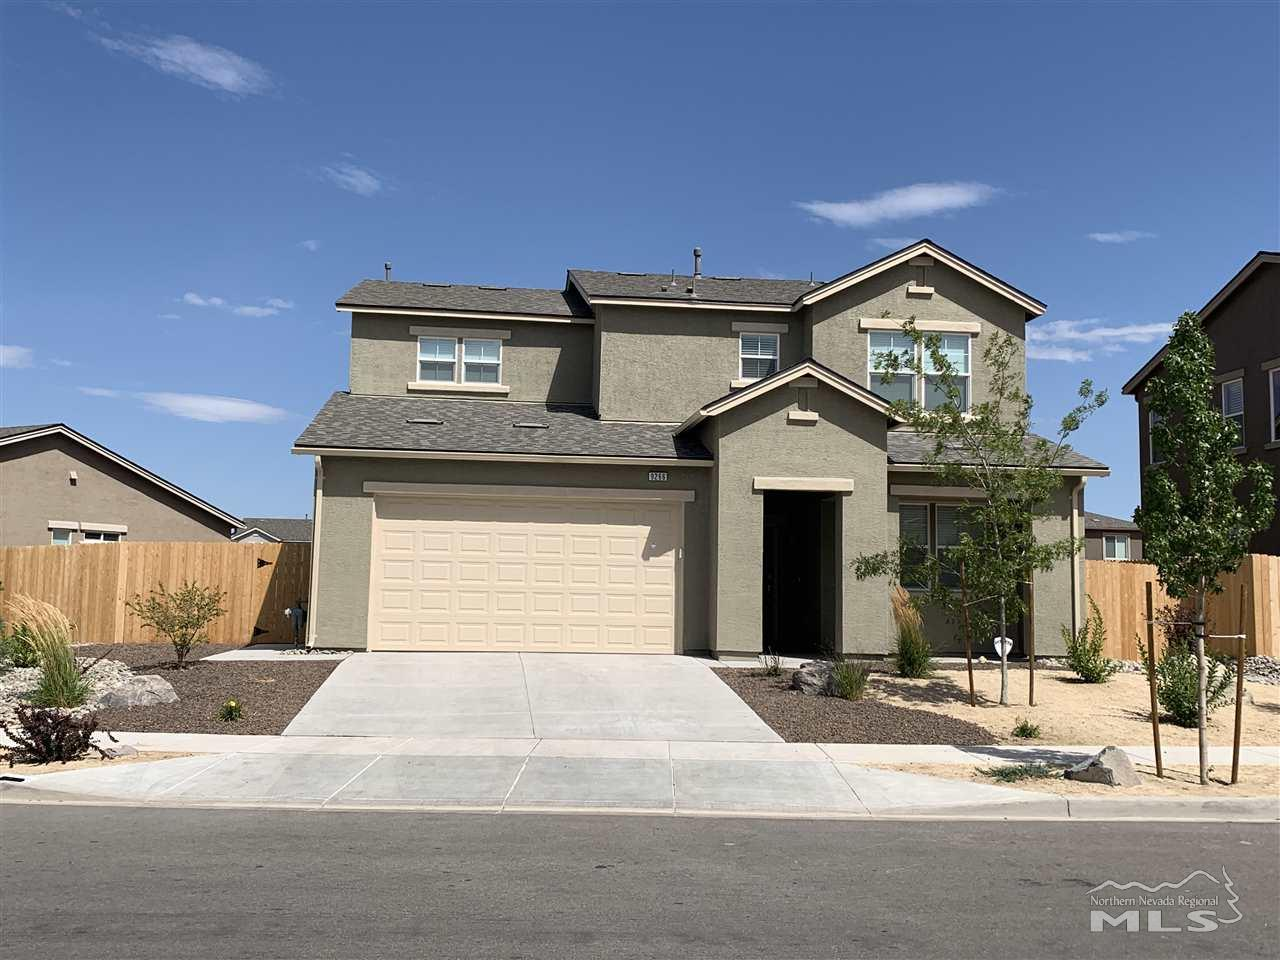 Image for 9266 Atoll drive, Reno, NV 89506